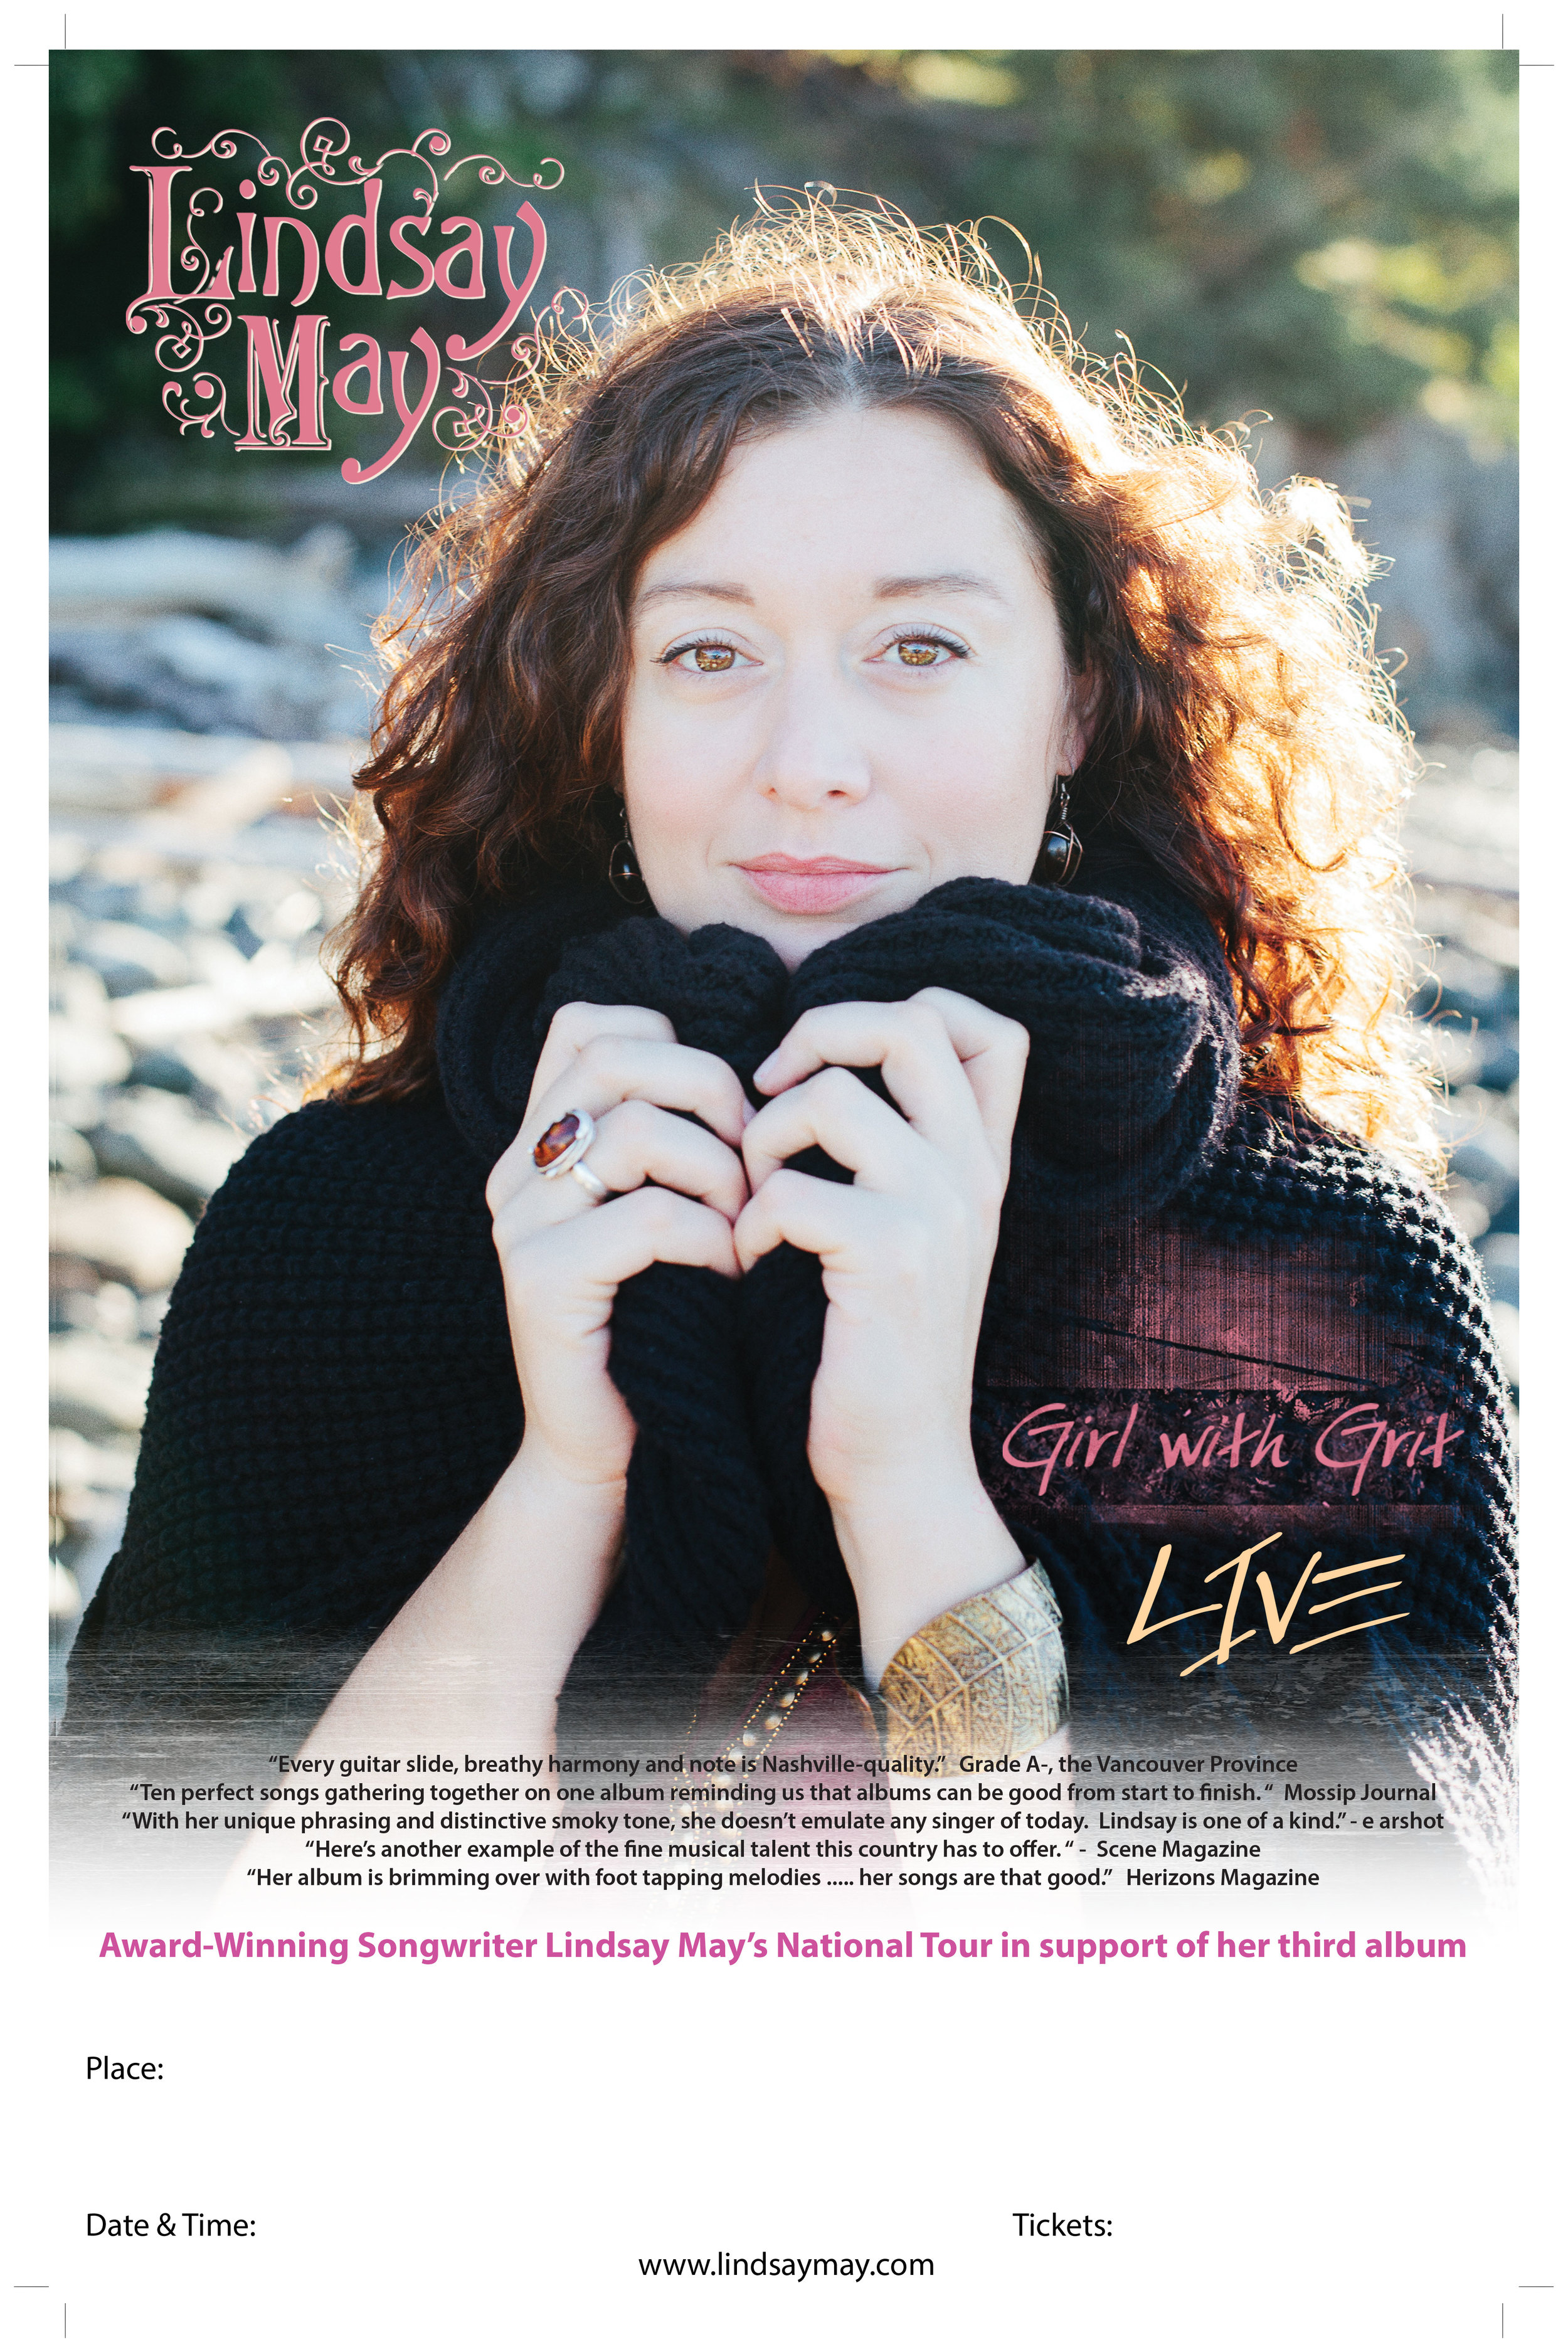 Lindsay May Girl with Grit Tour poster details.jpg